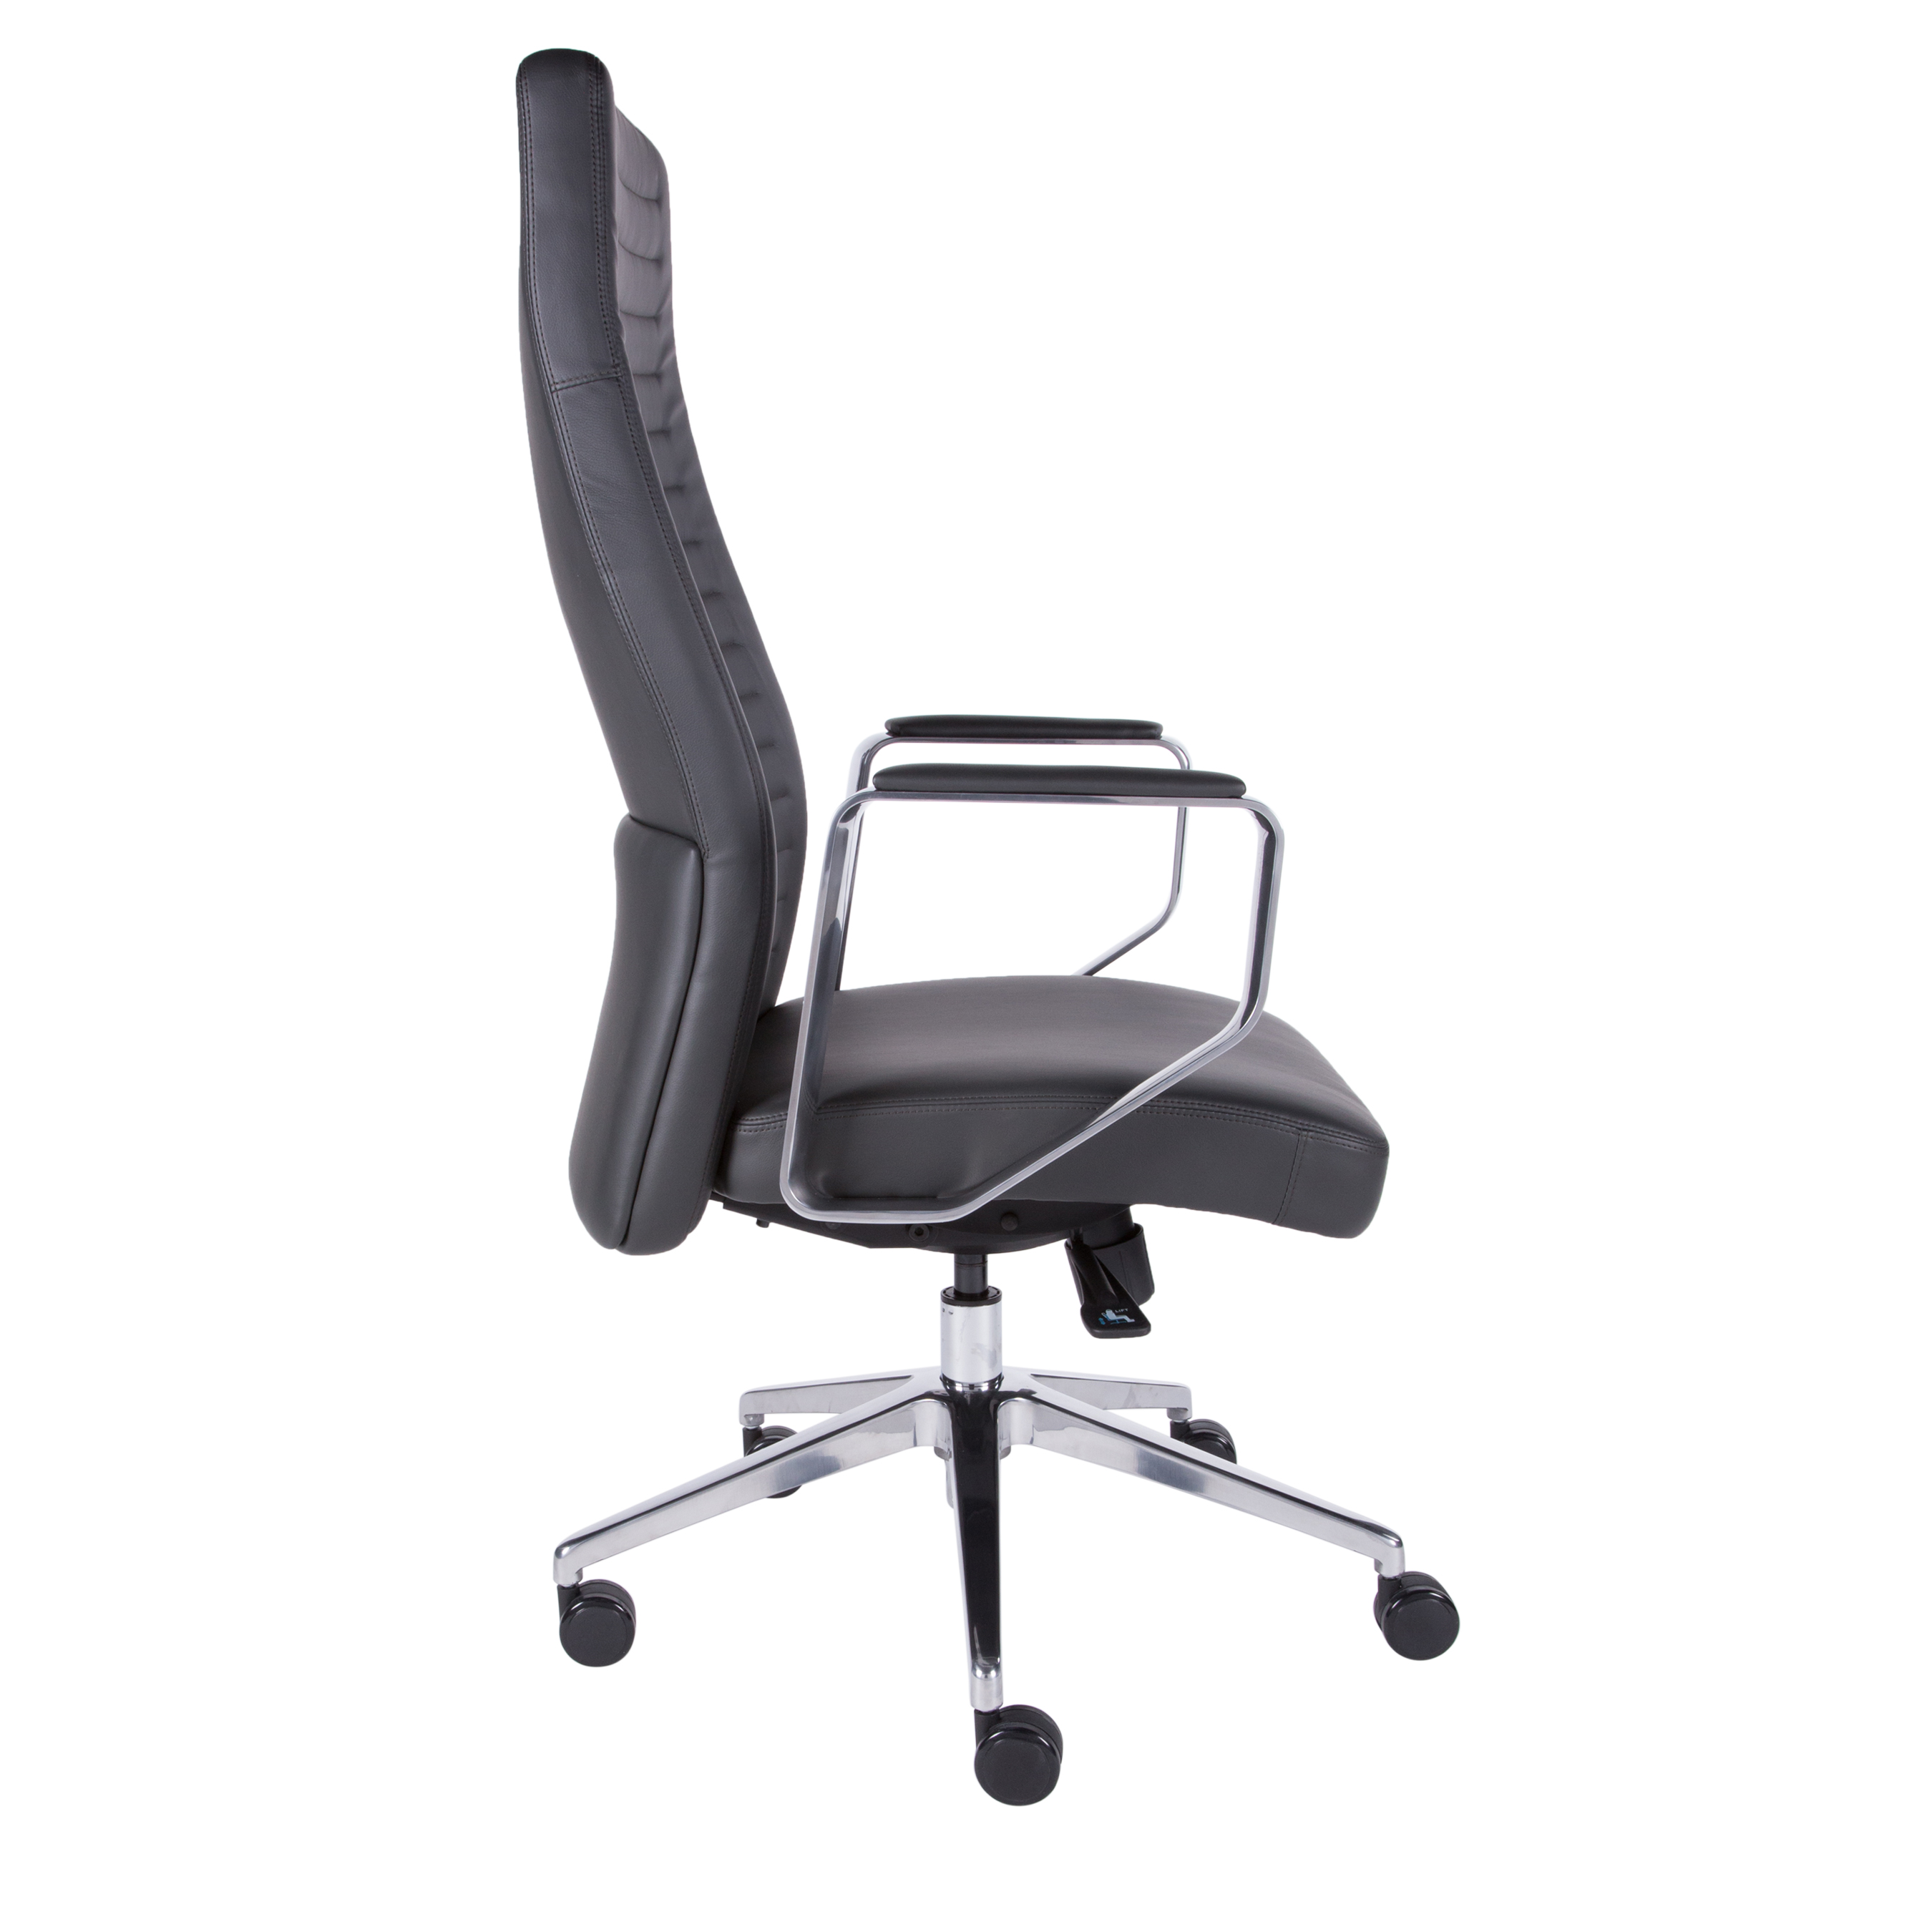 Emory High Back fice Chair Euro Style